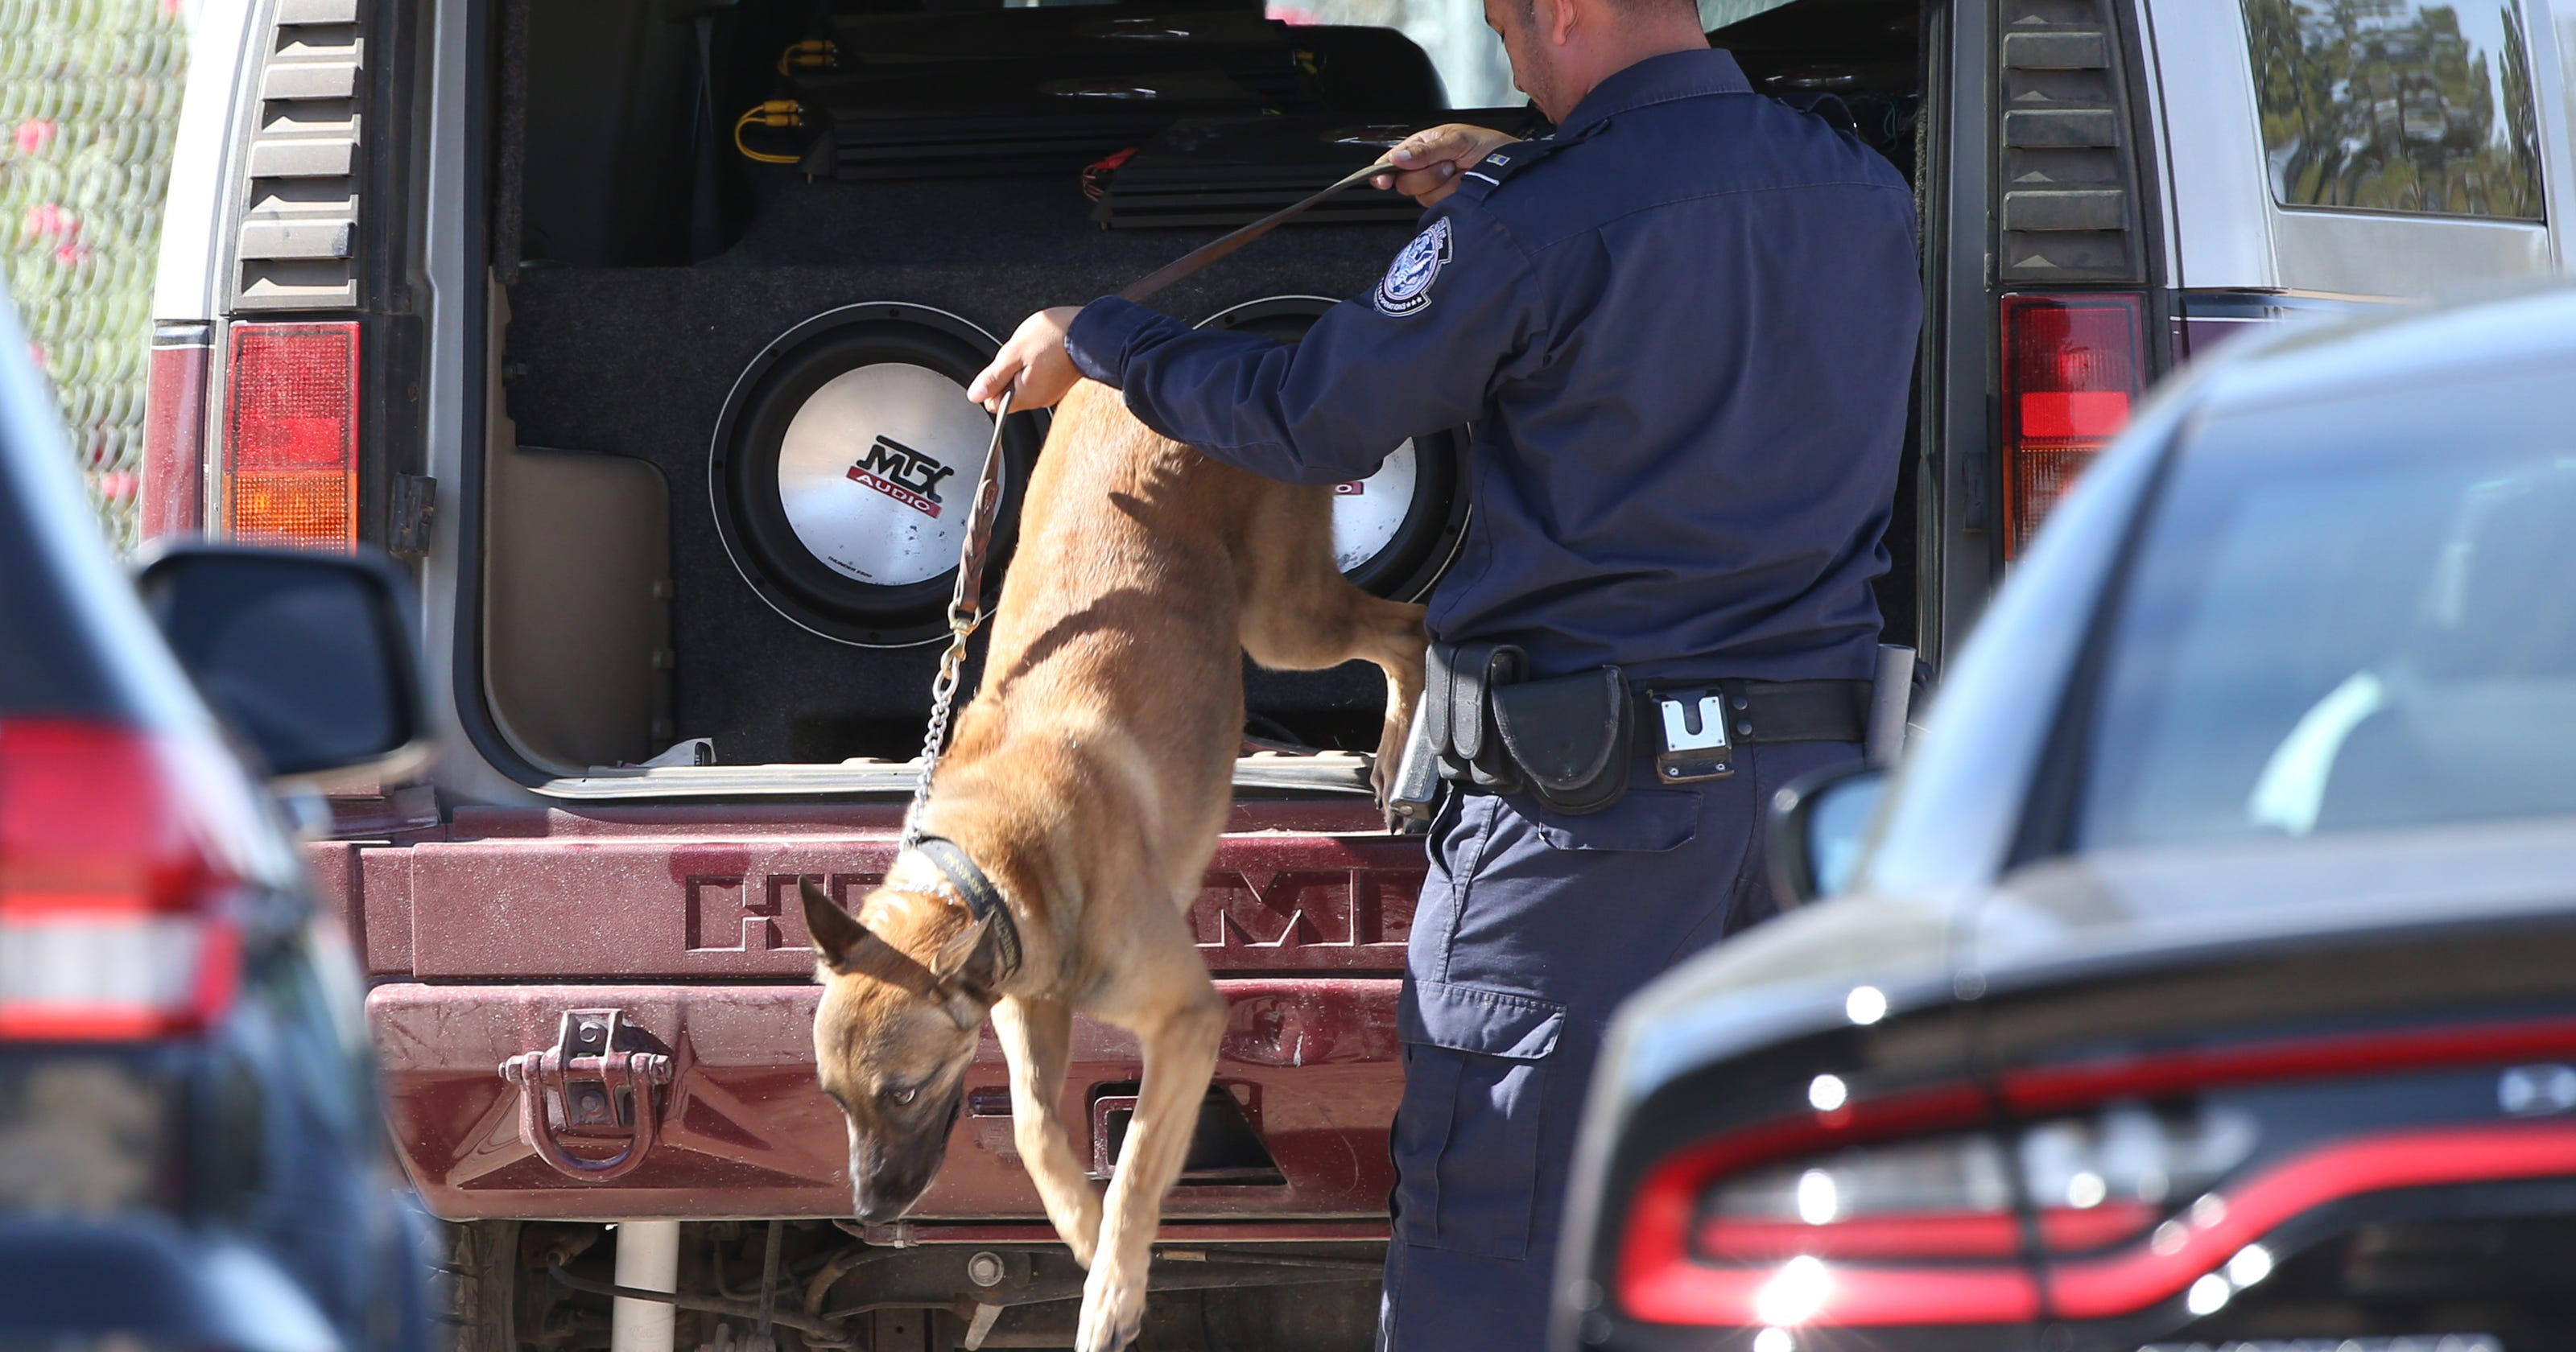 Two dogs strangled during search for immigrants in Texas